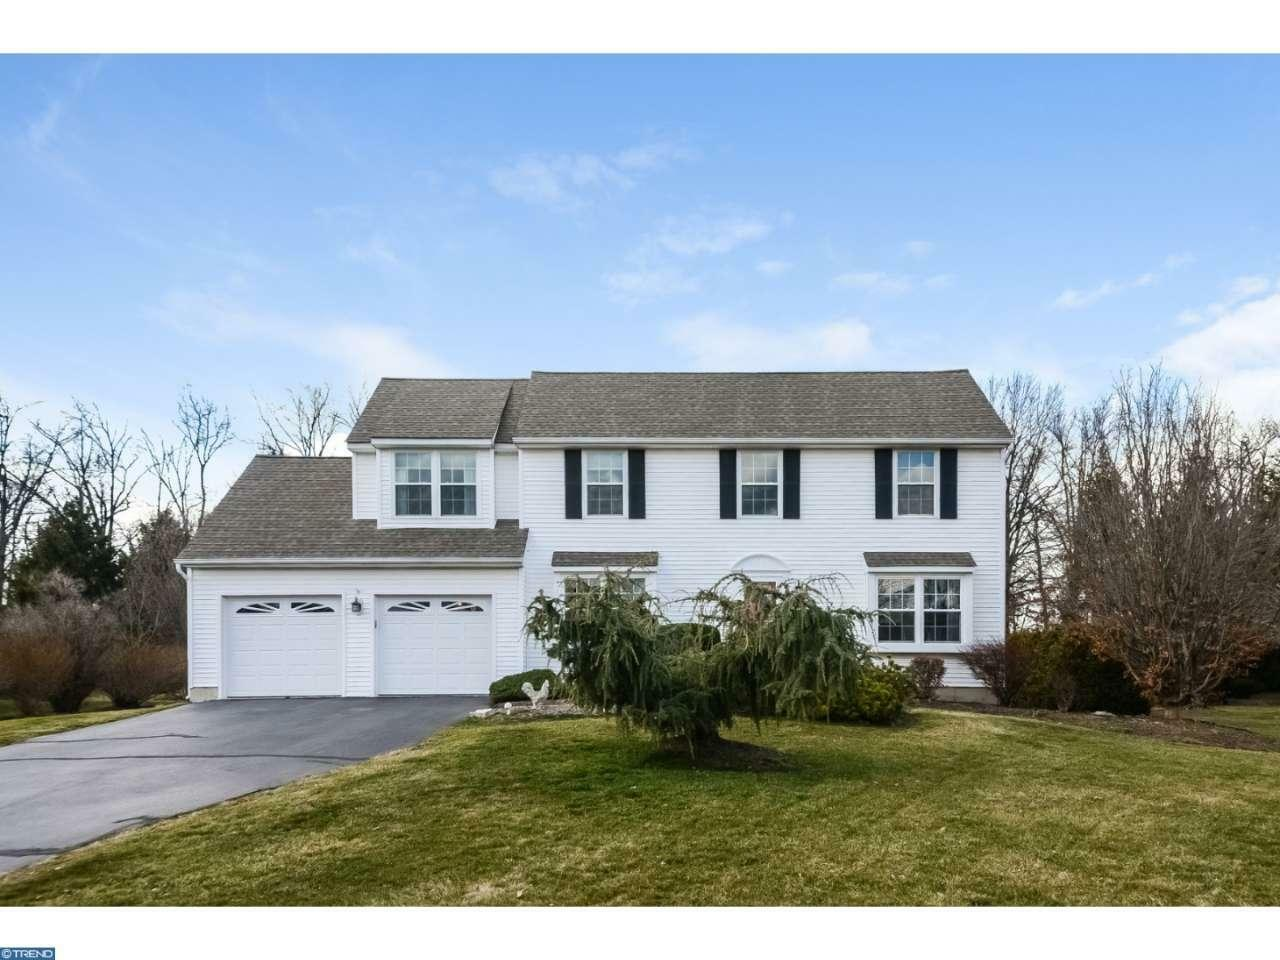 5151 Meadowbrook Pl, Pipersville, PA - USA (photo 1)